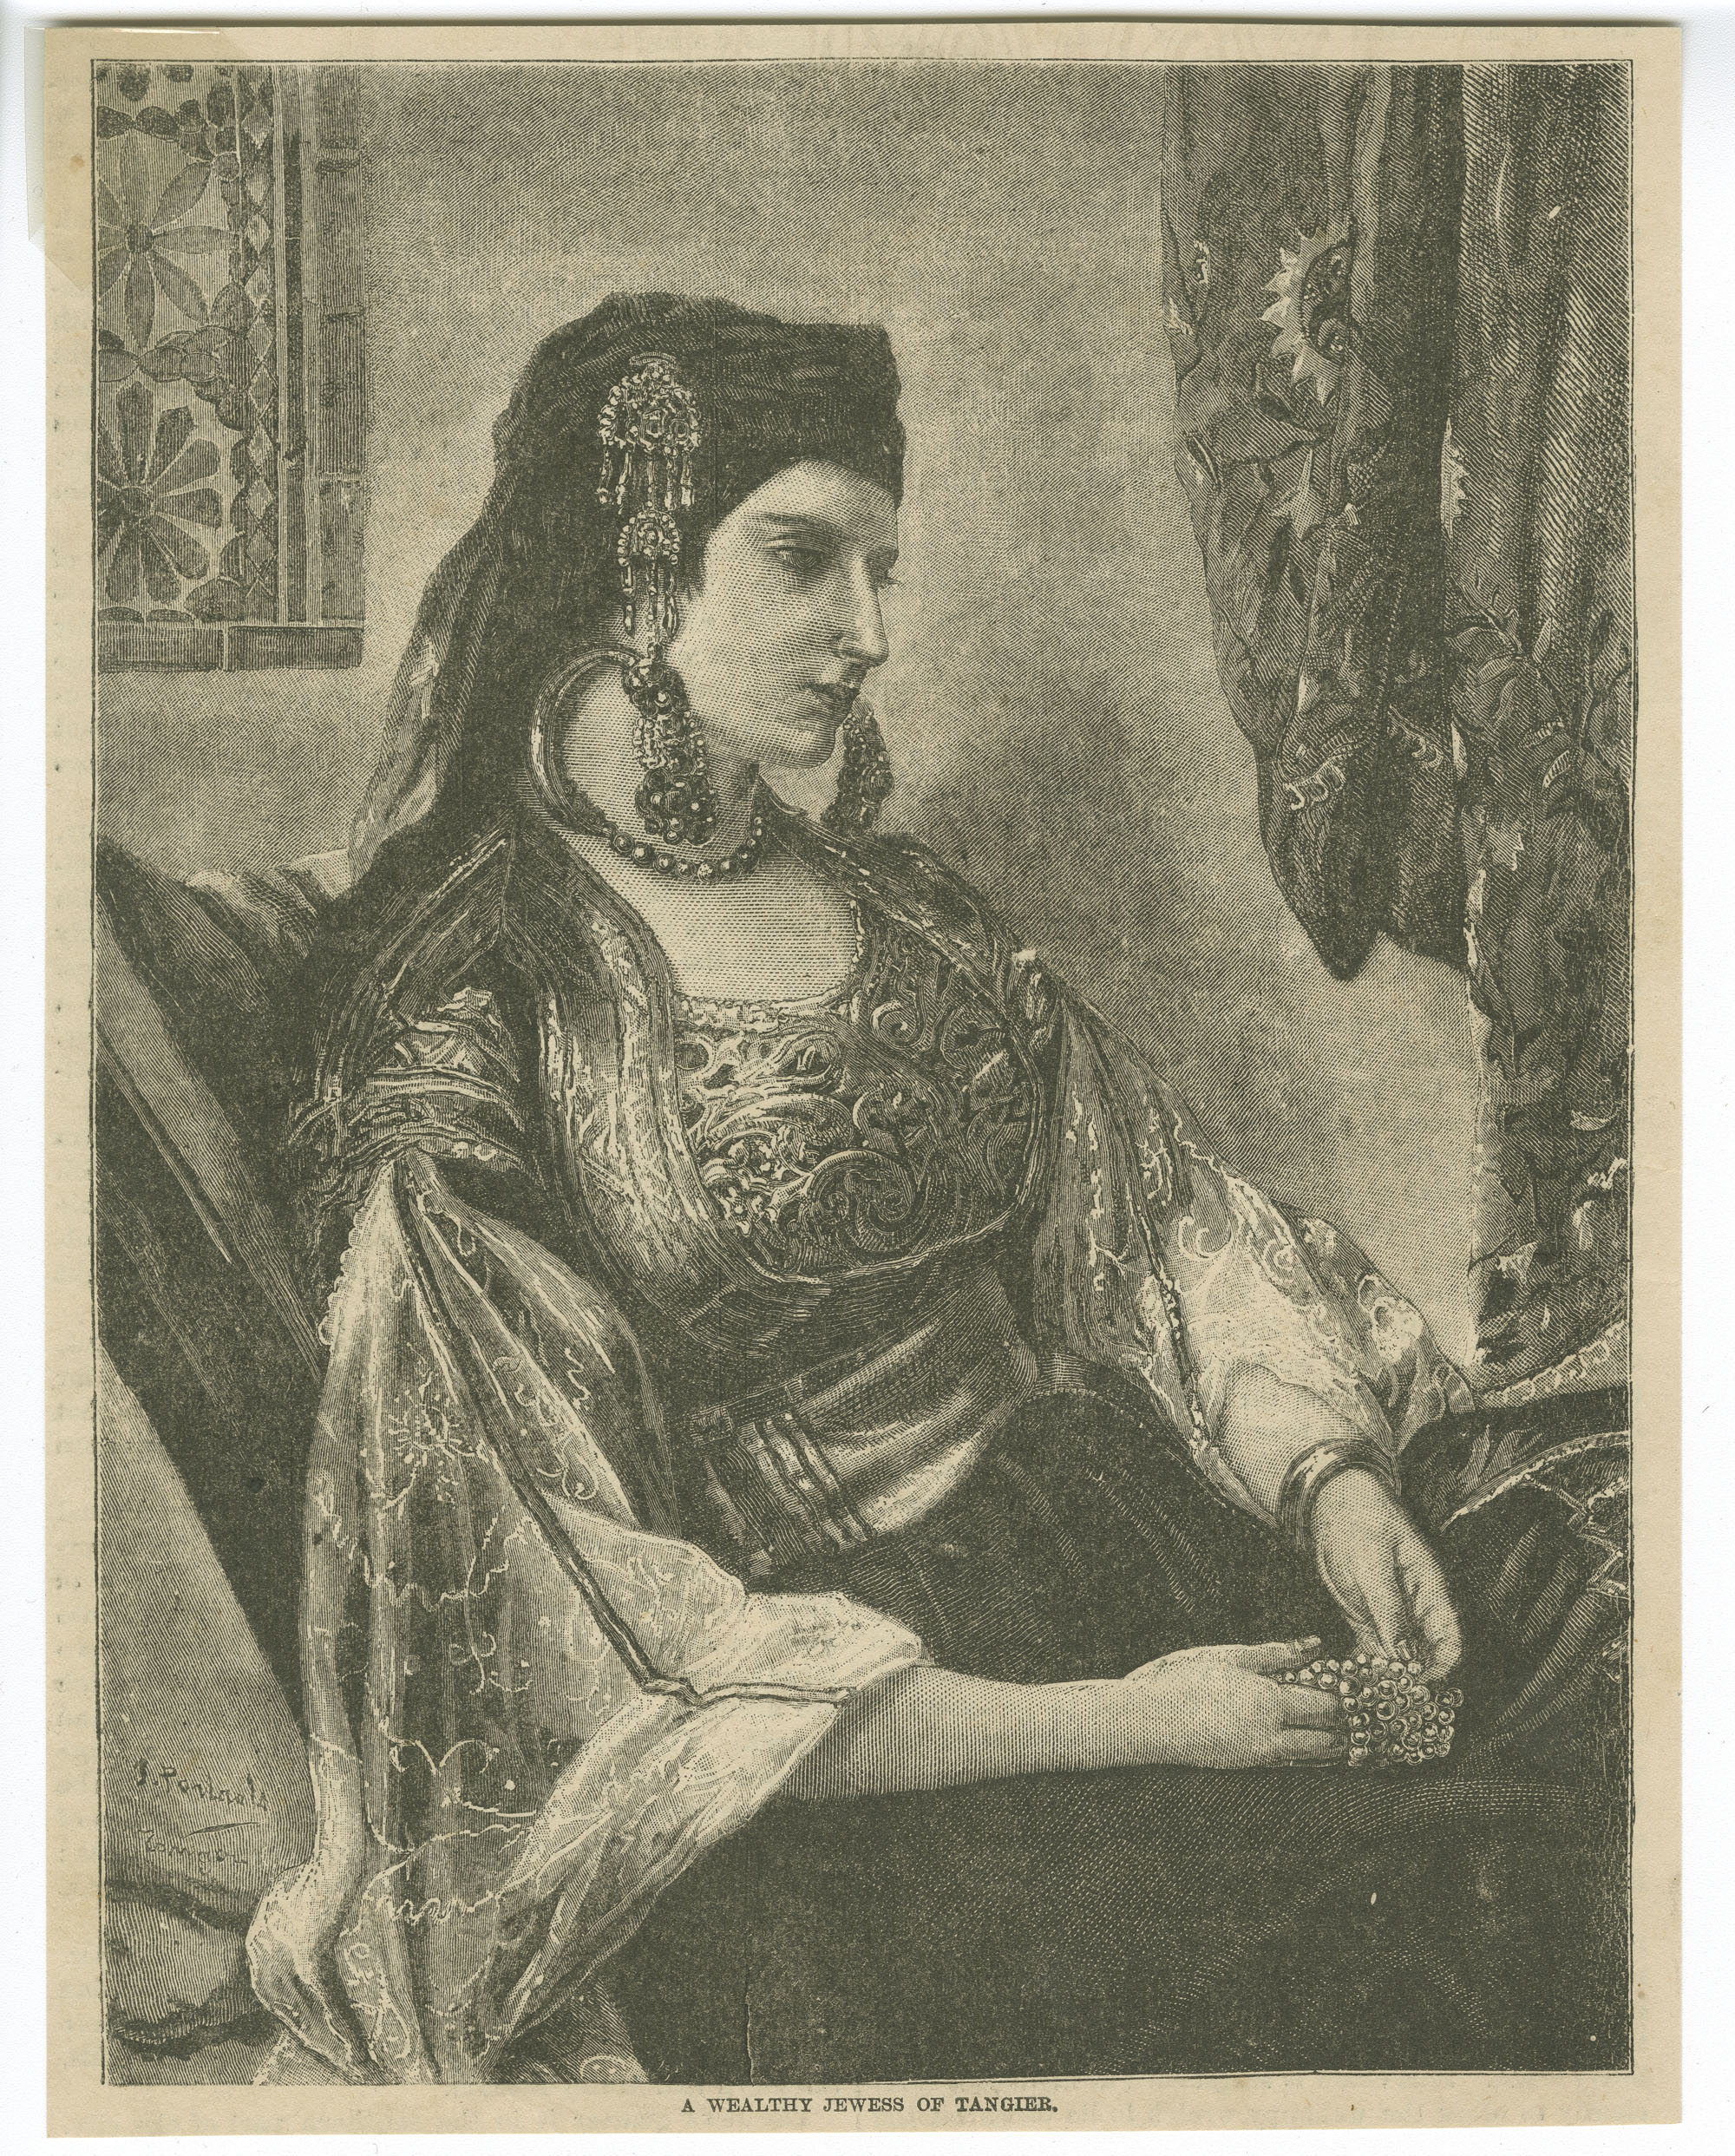 A wealthy Jewess of Tangier